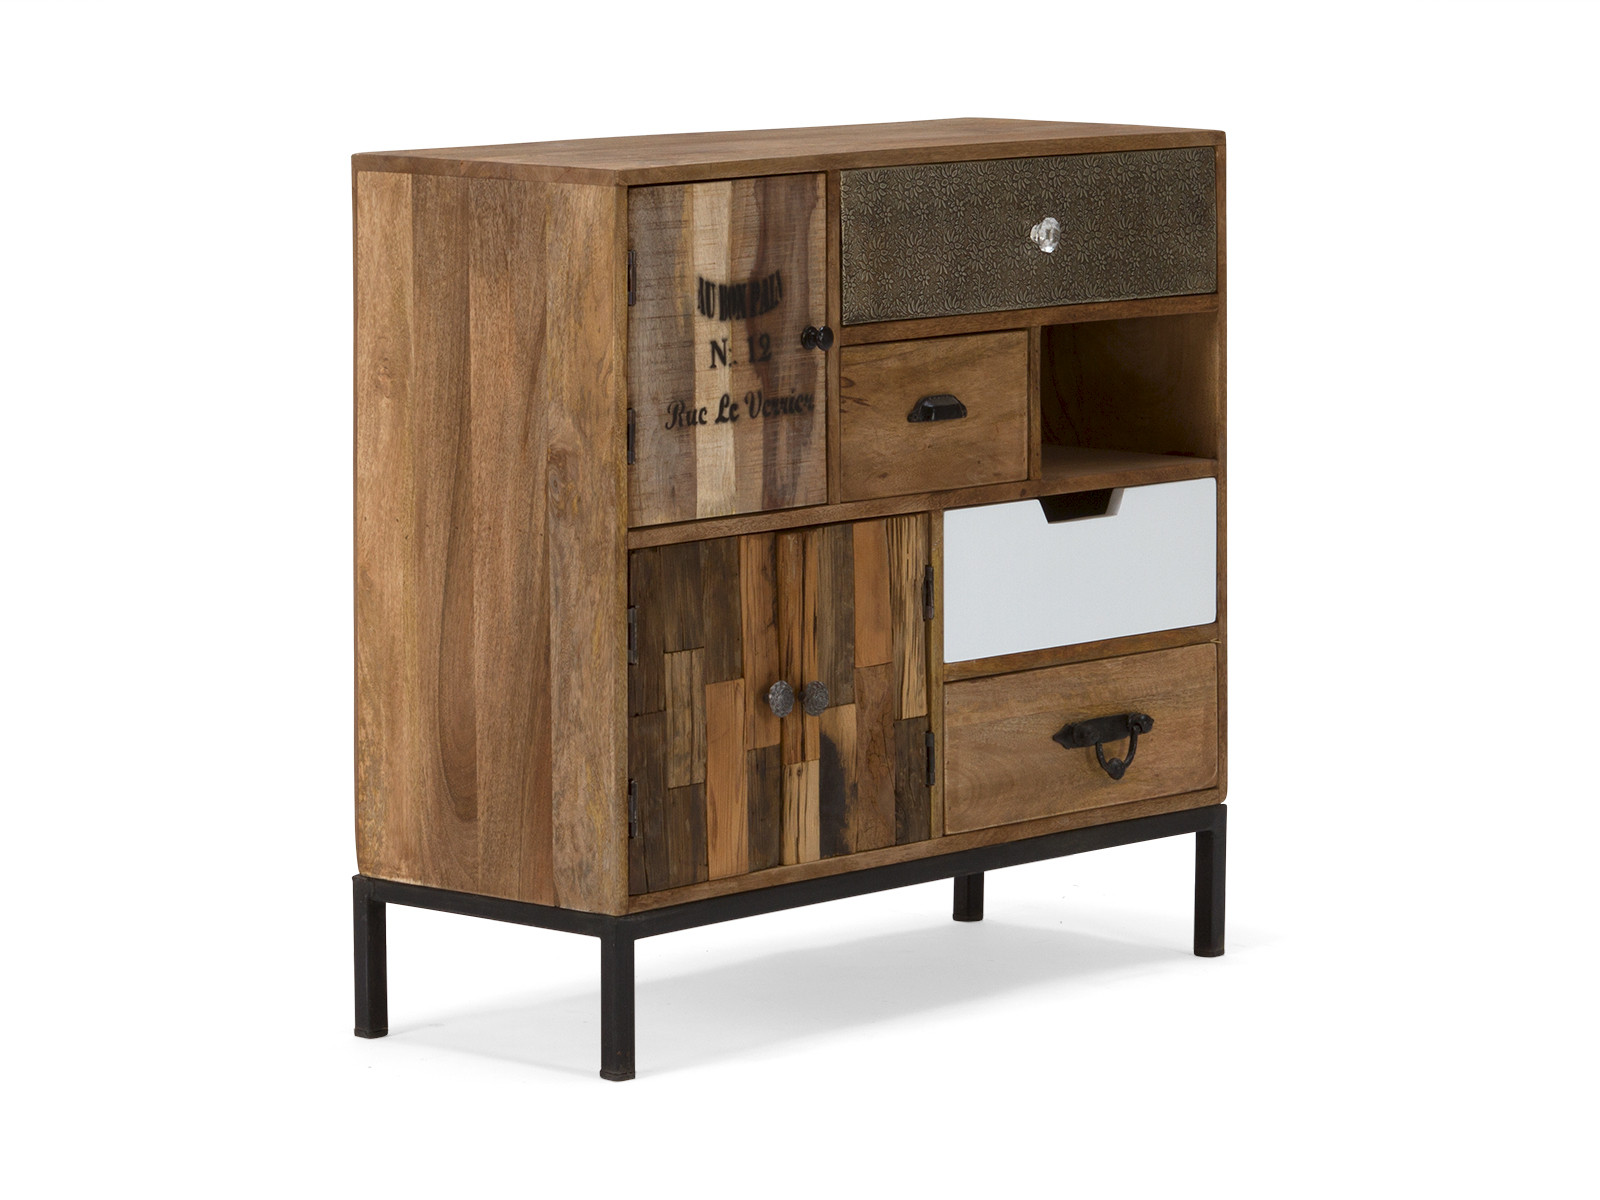 massivholz kommode mit schubladen stilmix versandkostenfreie m bel online. Black Bedroom Furniture Sets. Home Design Ideas